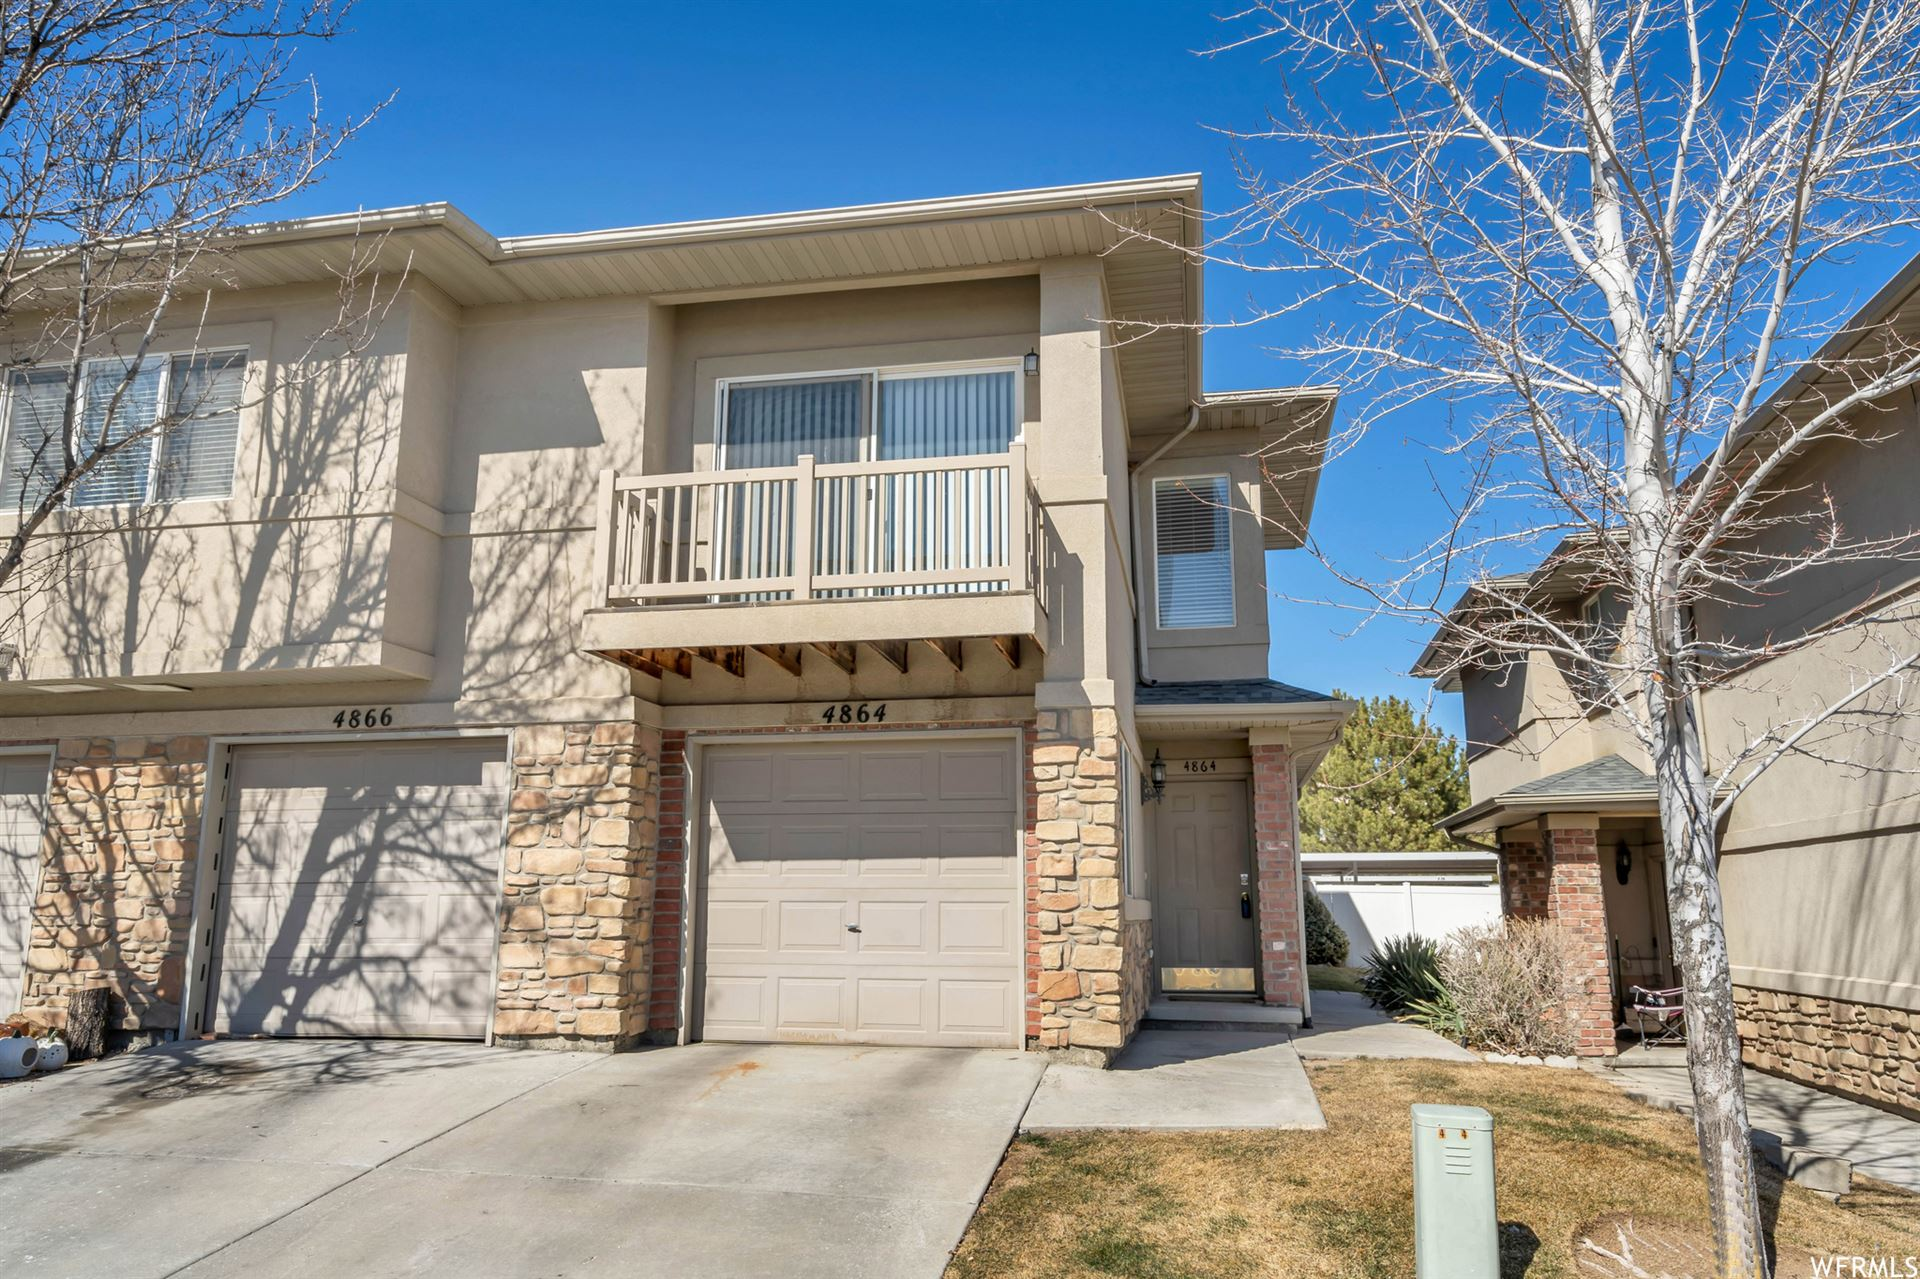 Photo of 4864 W STORMY MEADOW DR, Riverton, UT 84096 (MLS # 1727716)